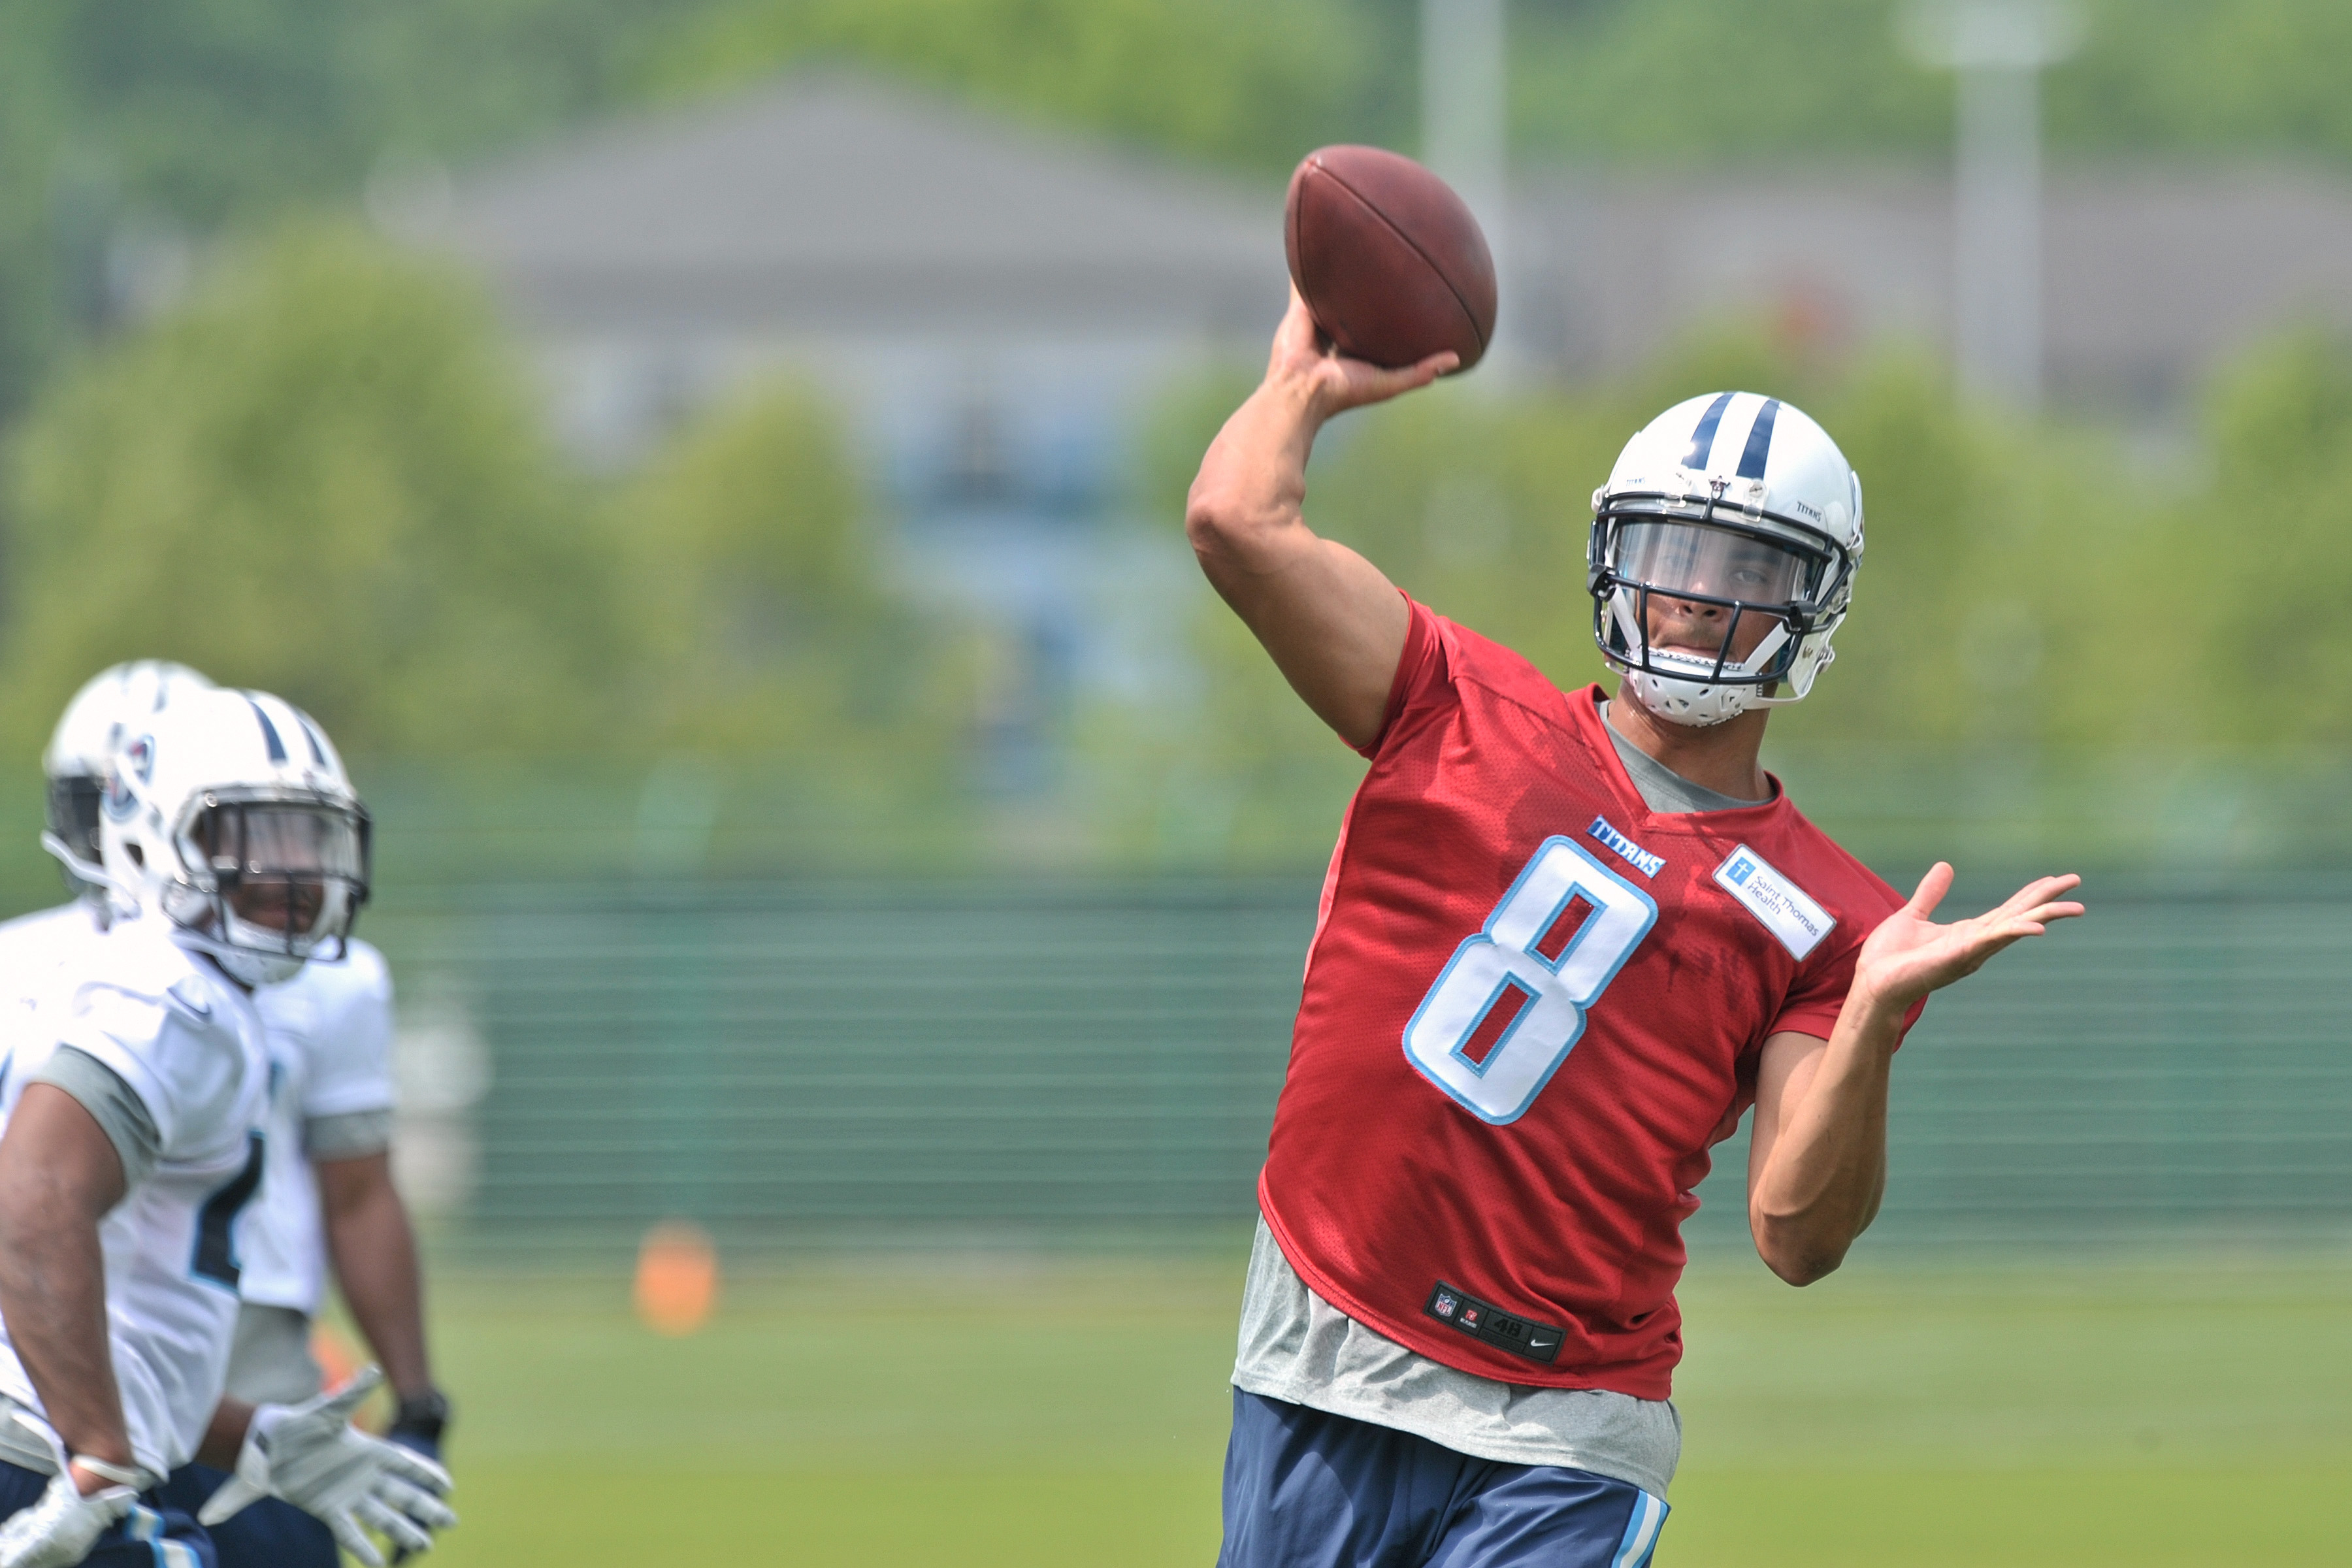 Titans get their first look at Marcus Mariota Friday